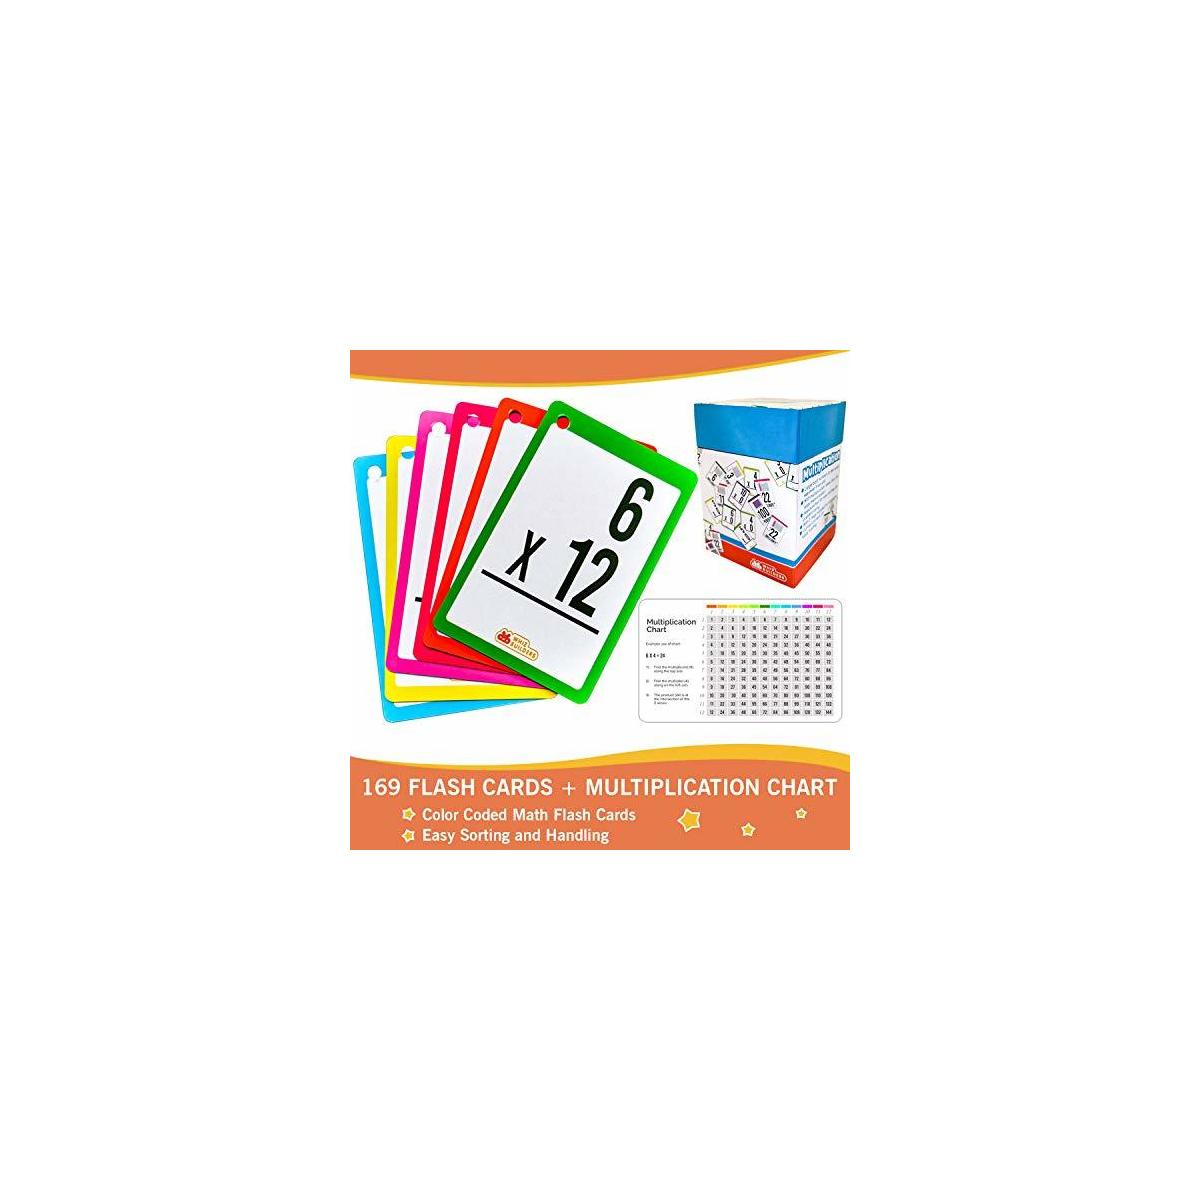 Multiplication Flash Cards For 3Rd Grade , Toddlers 2-4 – 169 Math  Manipulatives Flashcards - Multiplication And Division Times Table –  Learning Card